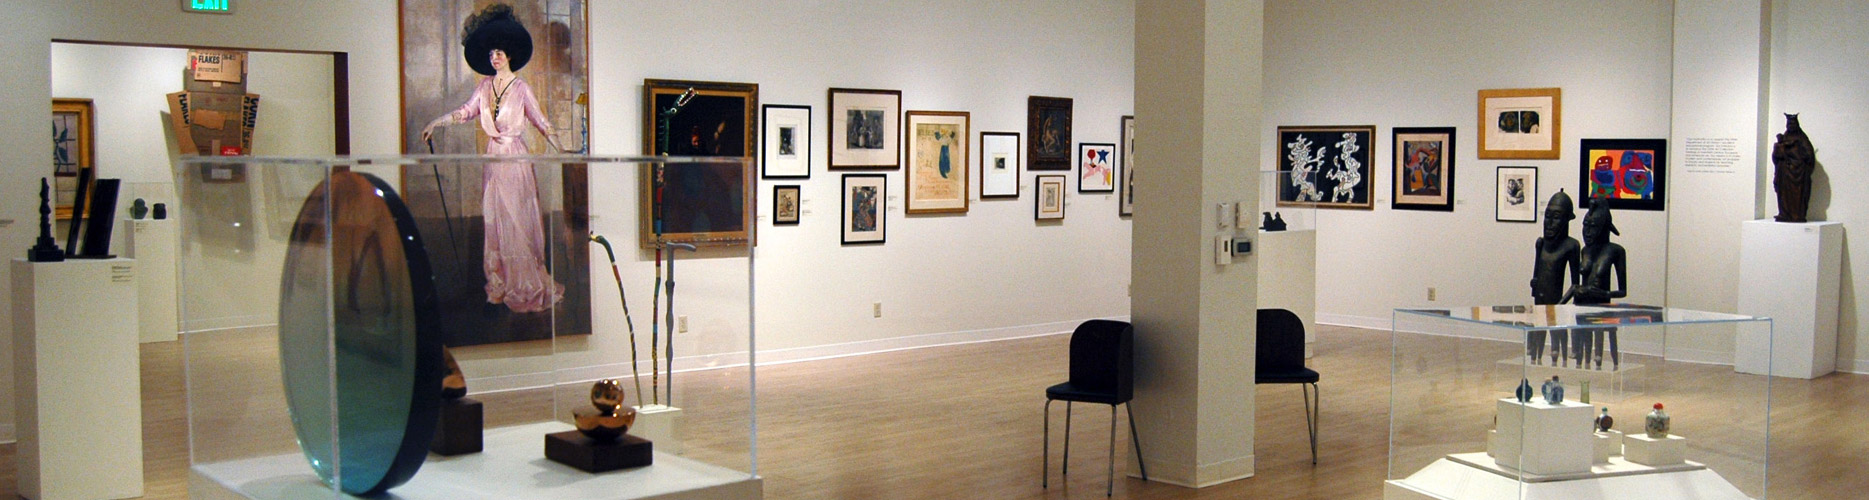 The Emile H. Mathis Art Gallery Is Home To The UWM Art Collection. The  Gallery Is Located On The University Of Wisconsin Milwaukee Campus In  Mitchell Hall ...